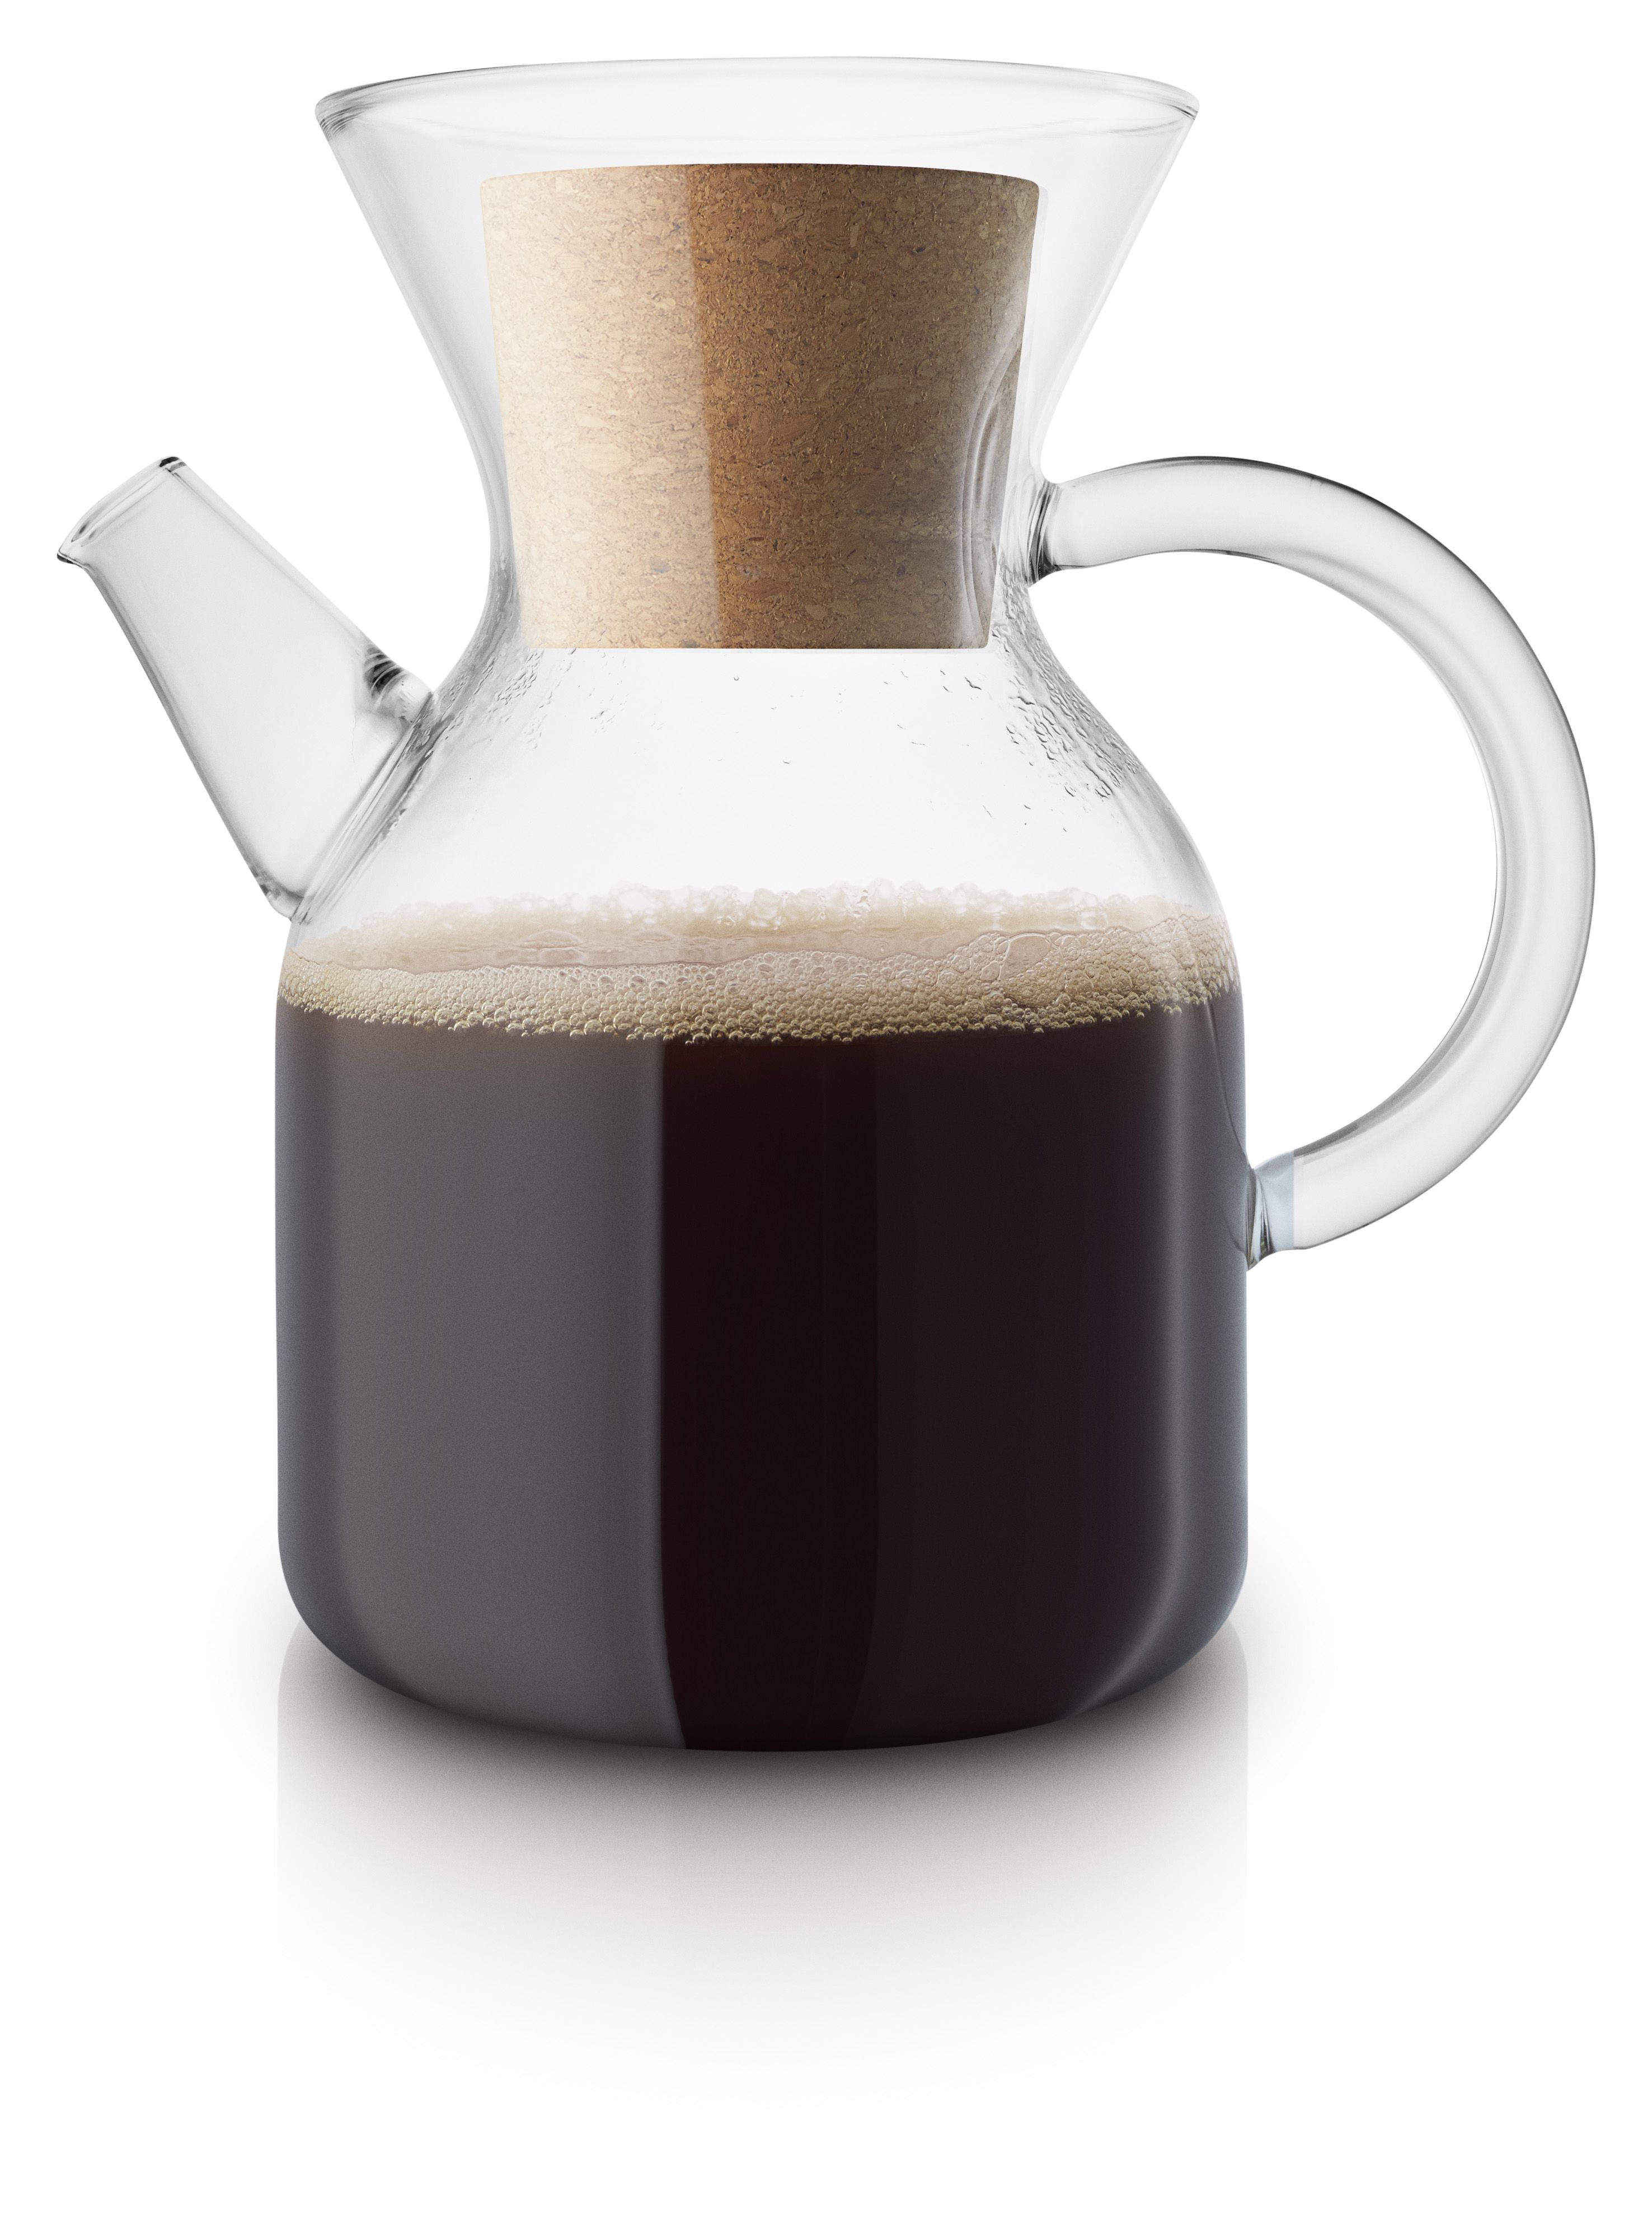 Pour over coffee maker by Eva Solo Sweet home